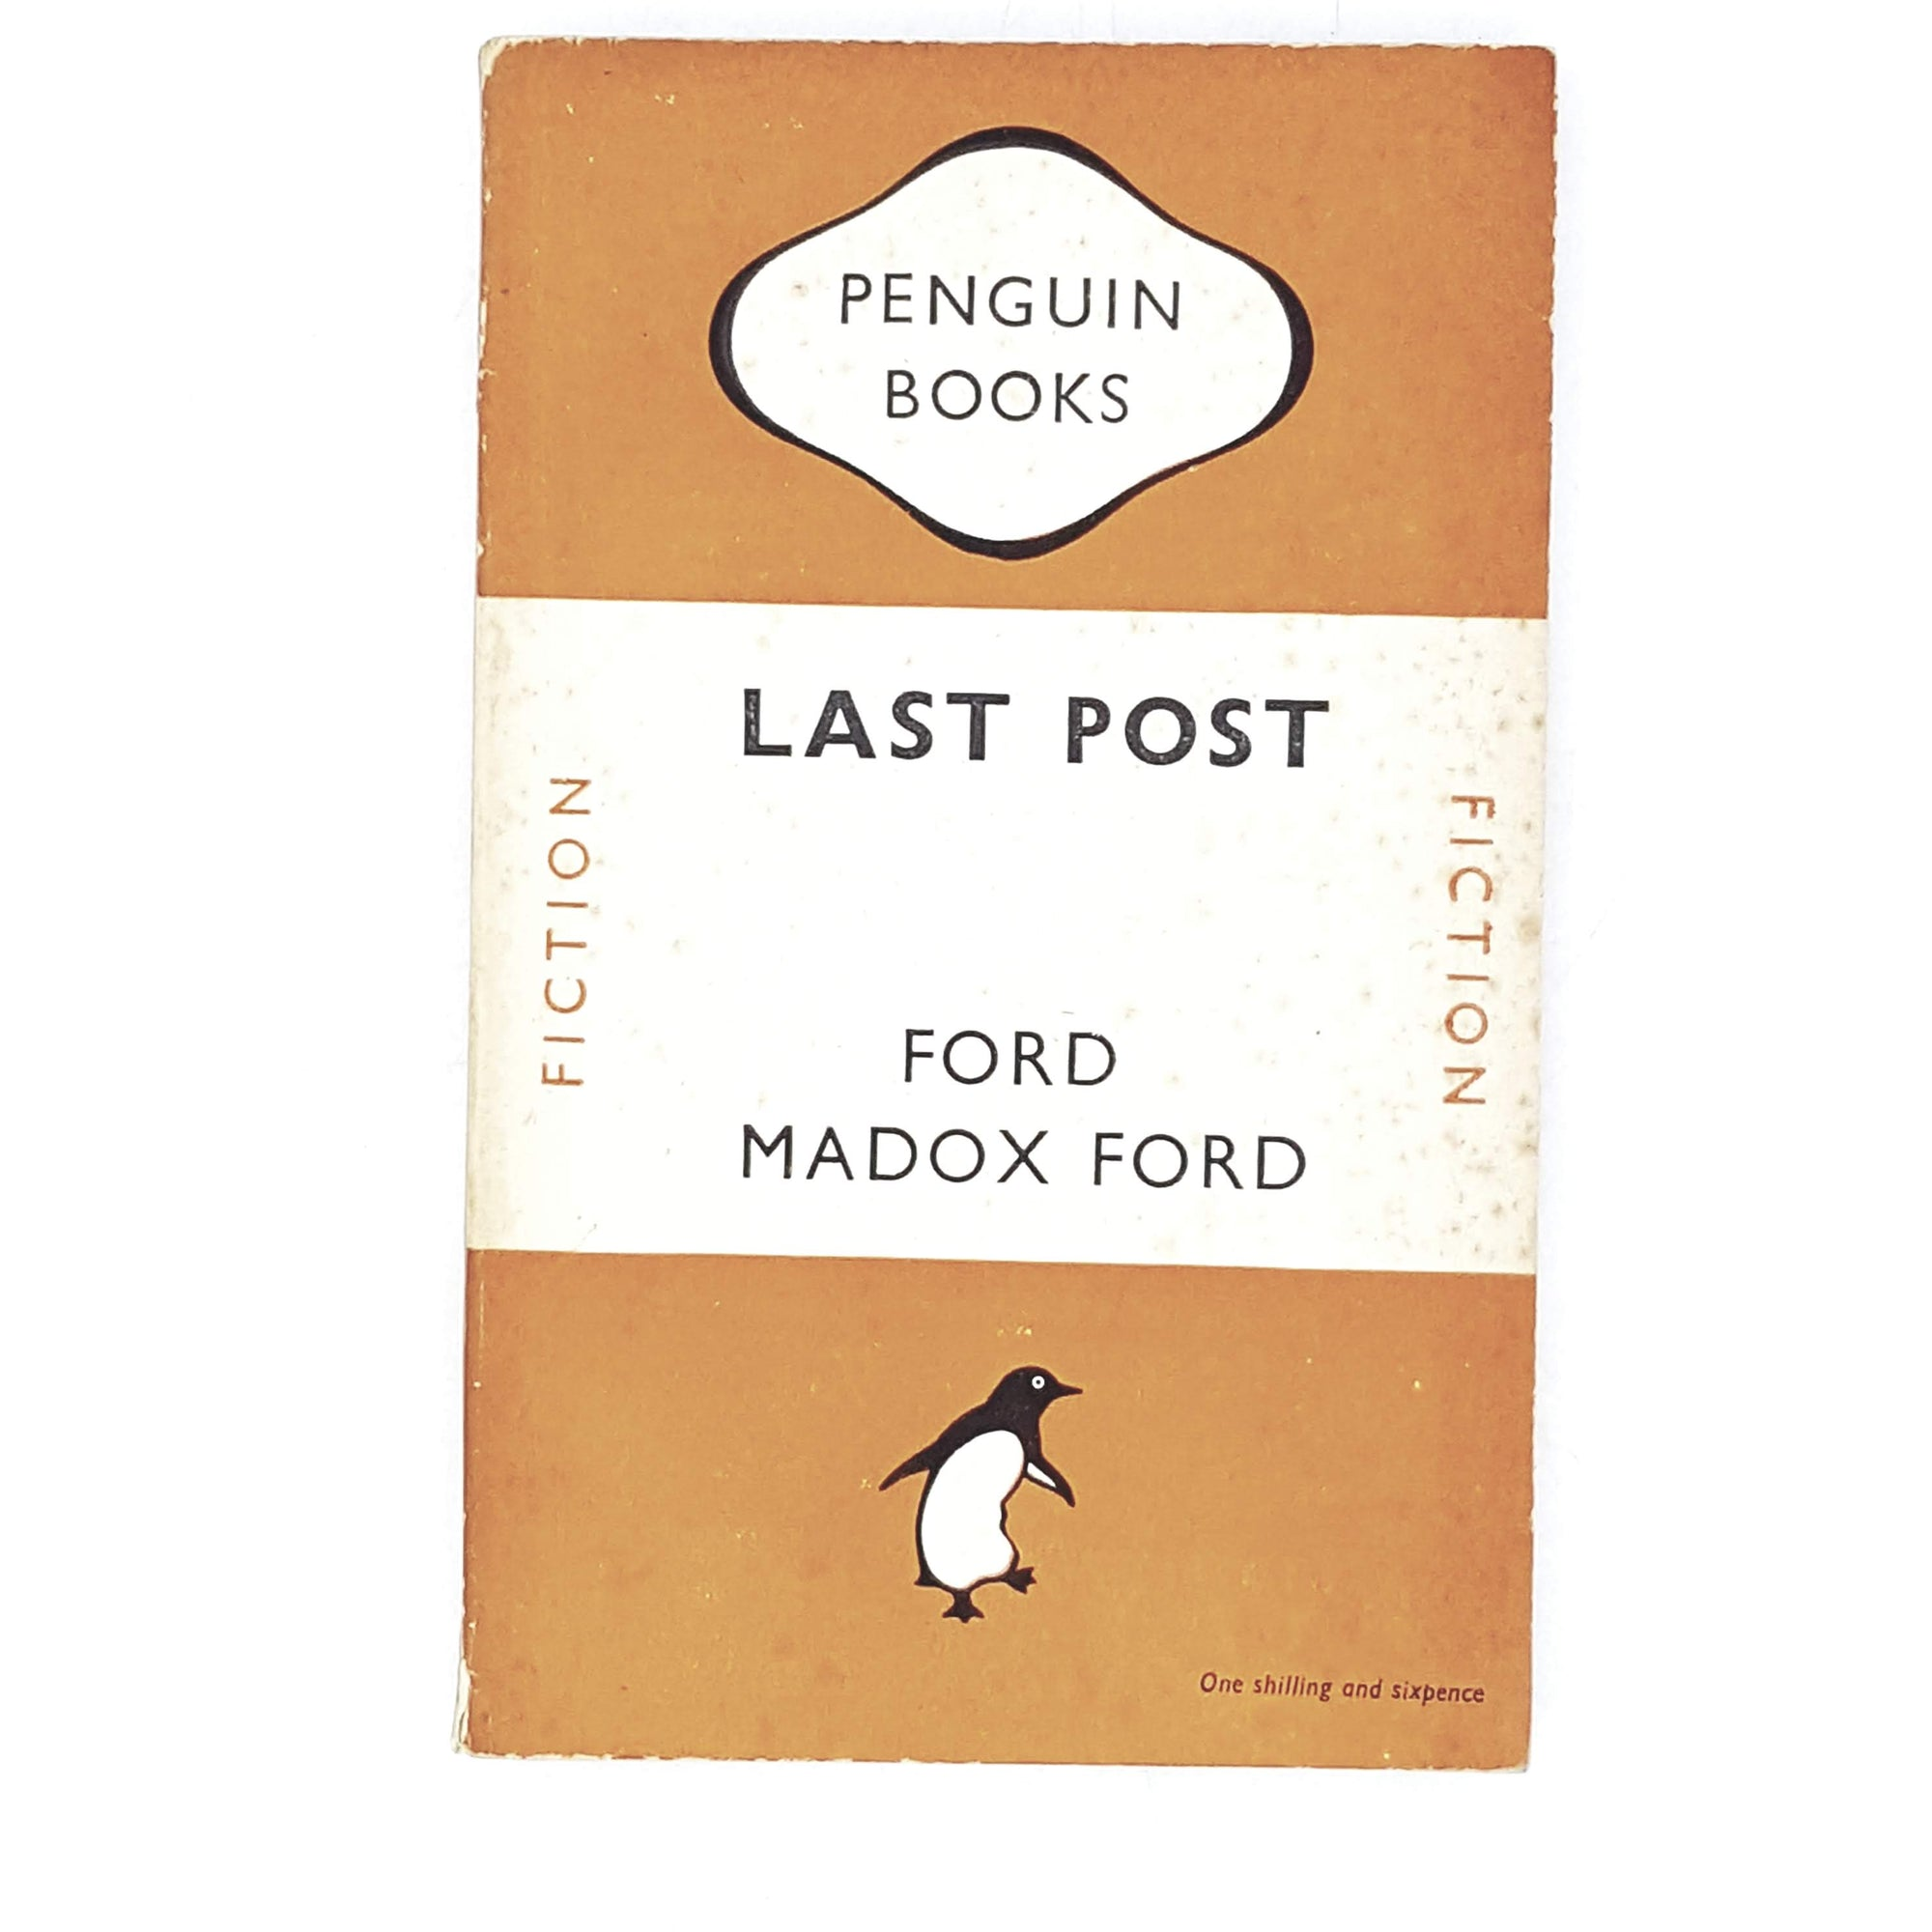 vintage-penguin-last-post-by-ford-maddox-ford-1948-country-house-library